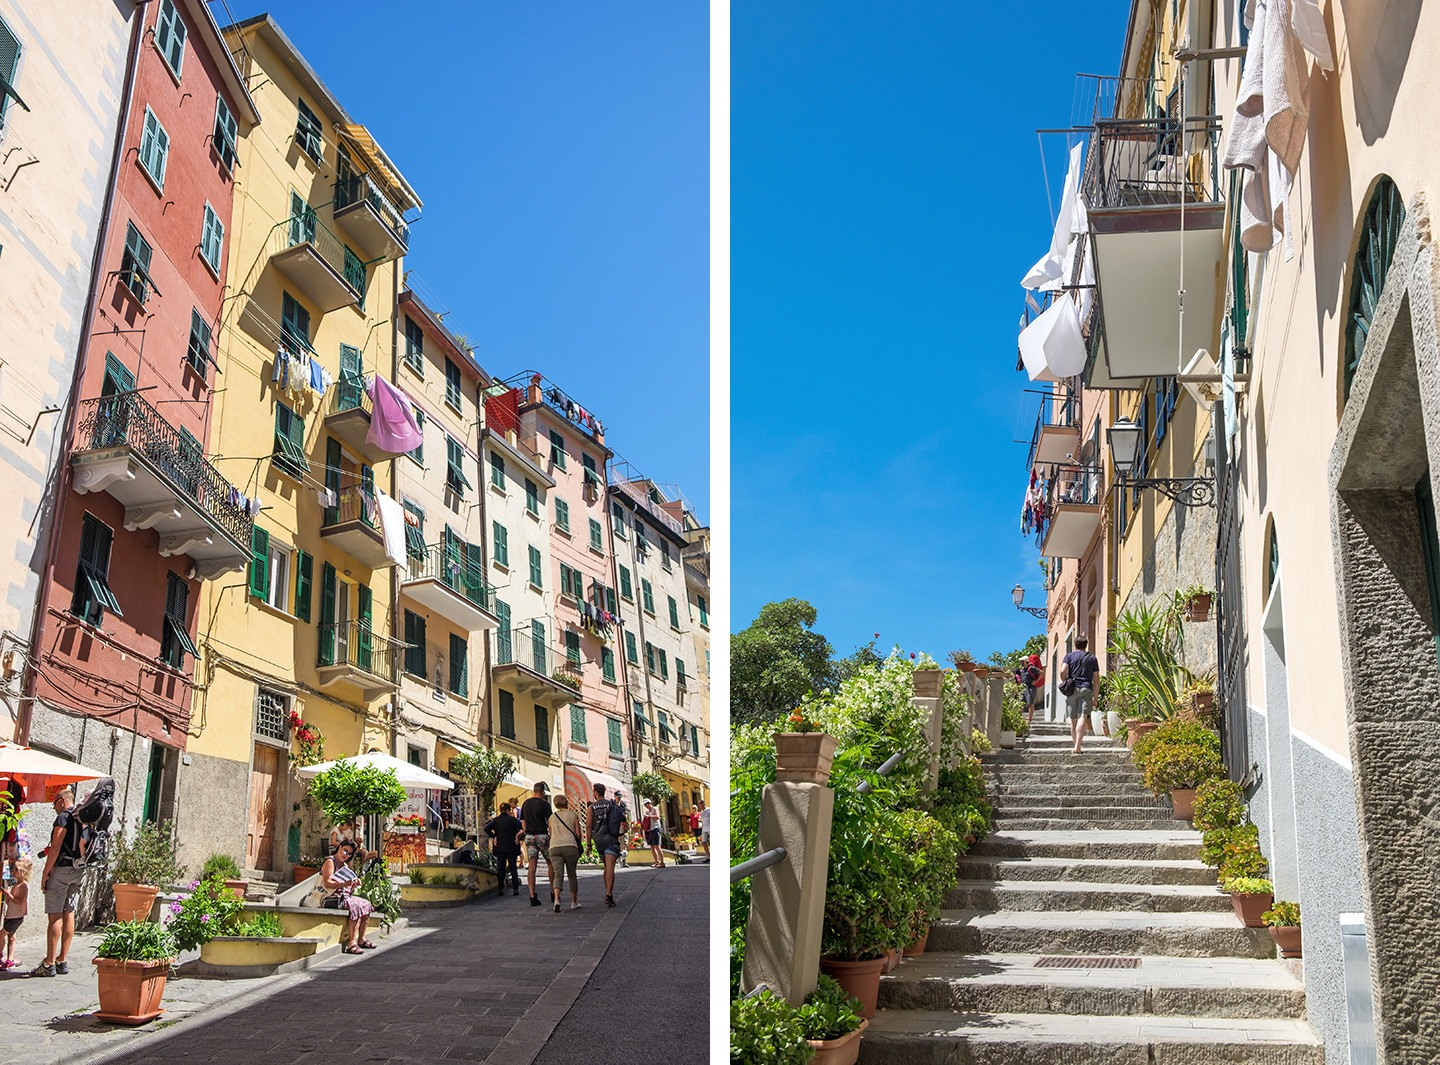 The colourful streets of Riomaggiore